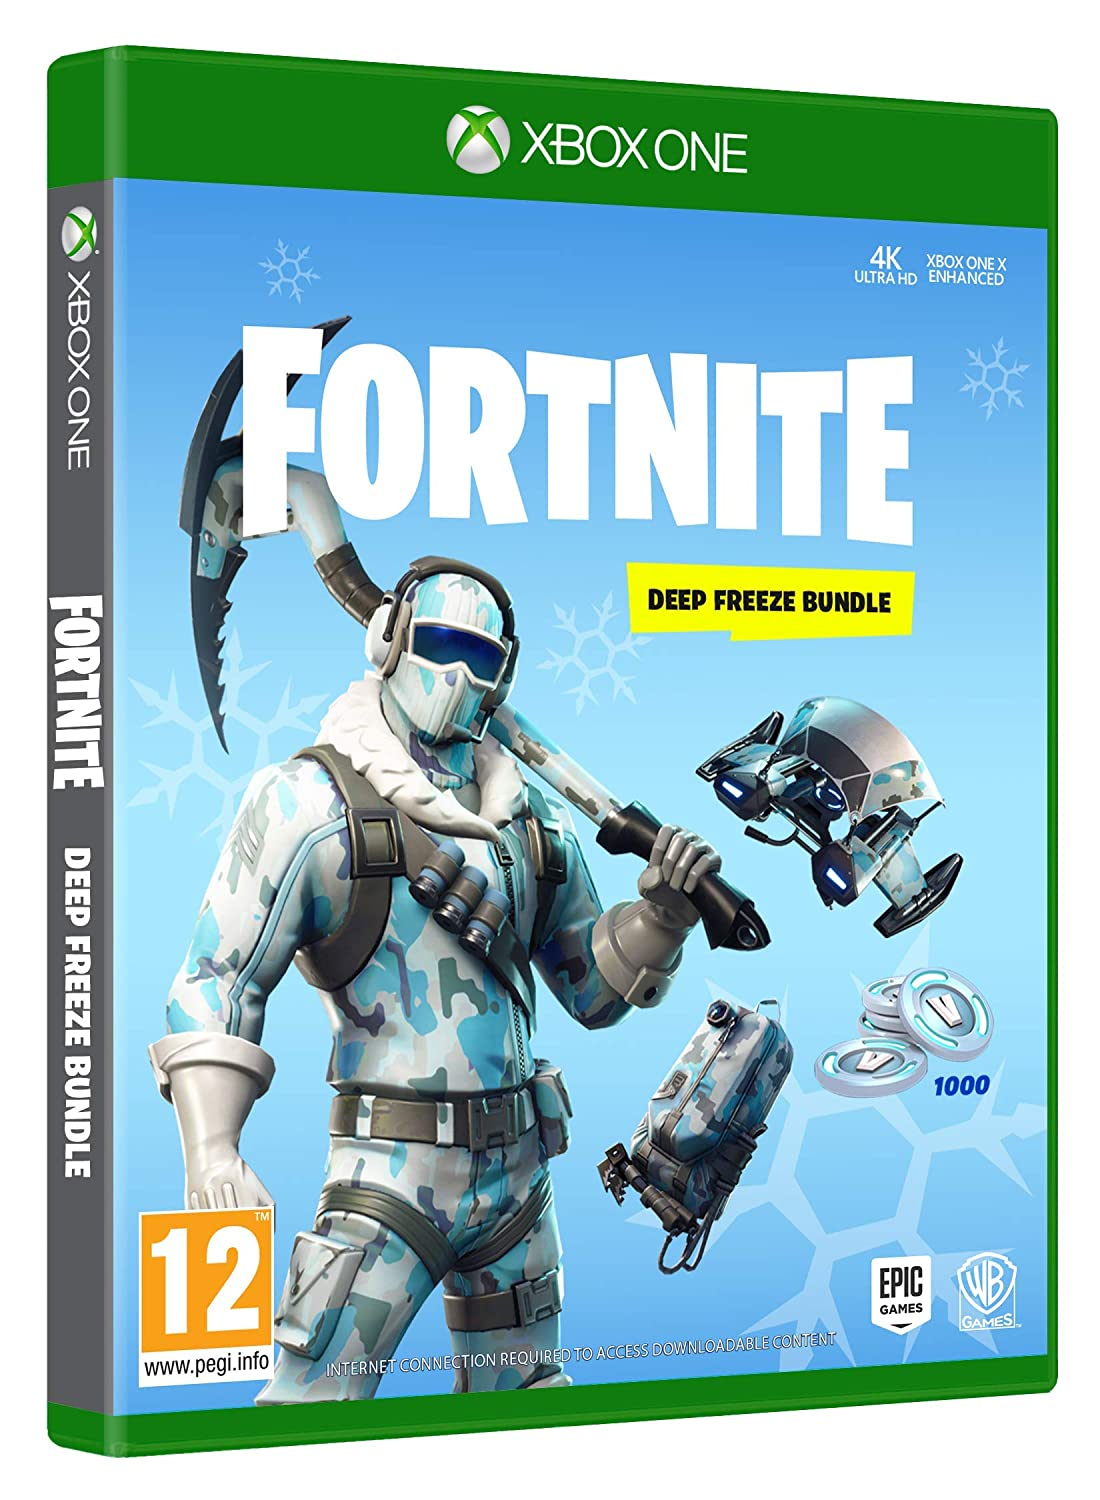 Amazon Com Fortnite Deep Freeze Bundle Ps4 Video Games You can filter by console or region. fortnite deep freeze bundle ps4